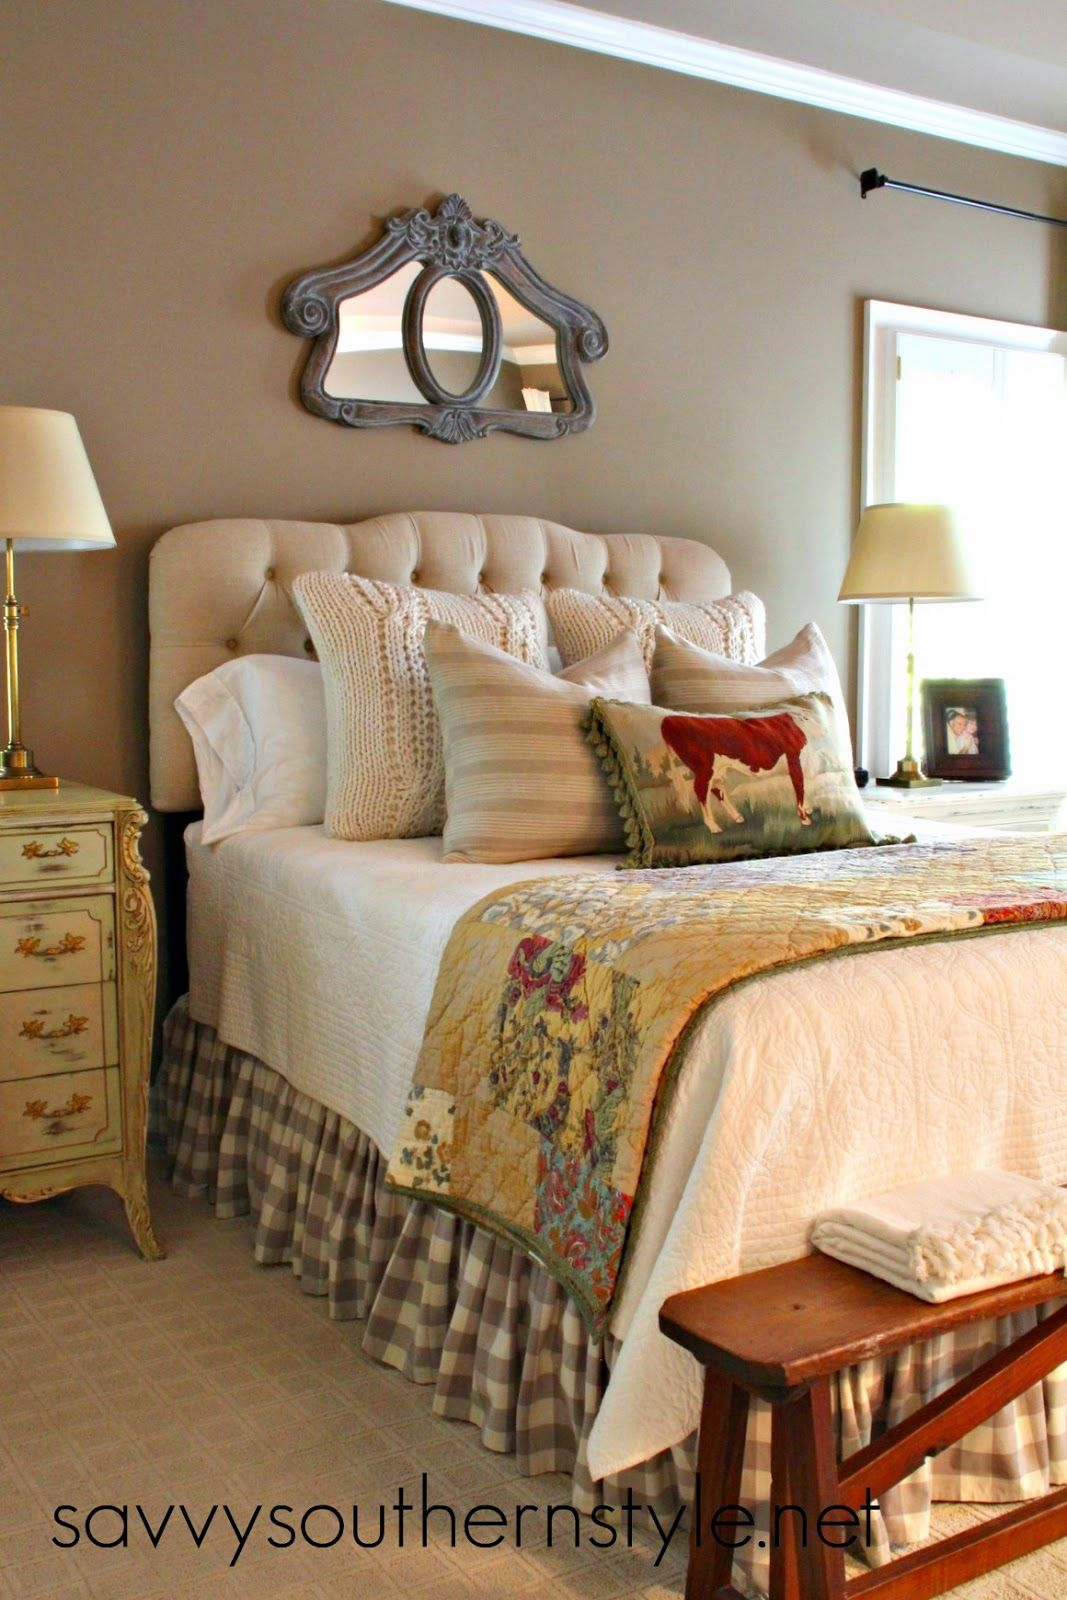 Savvy southern style my bed at the moment bedrooms pinterest